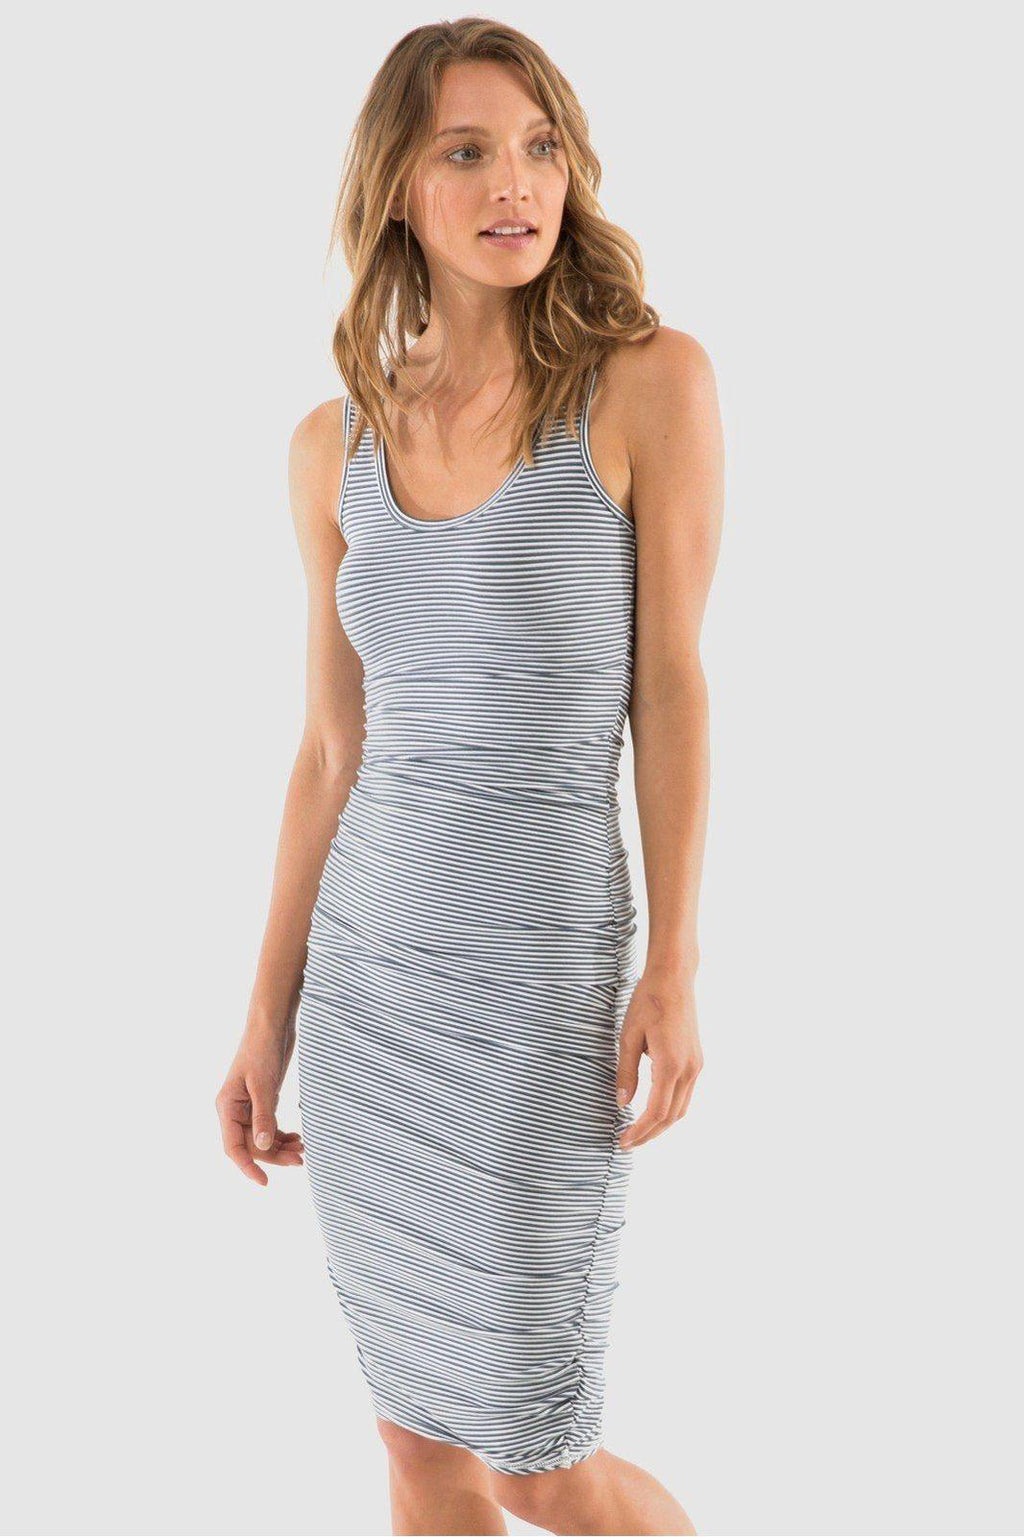 Bamboo Body Ruched Tank Dress - Navy and White - Weekends